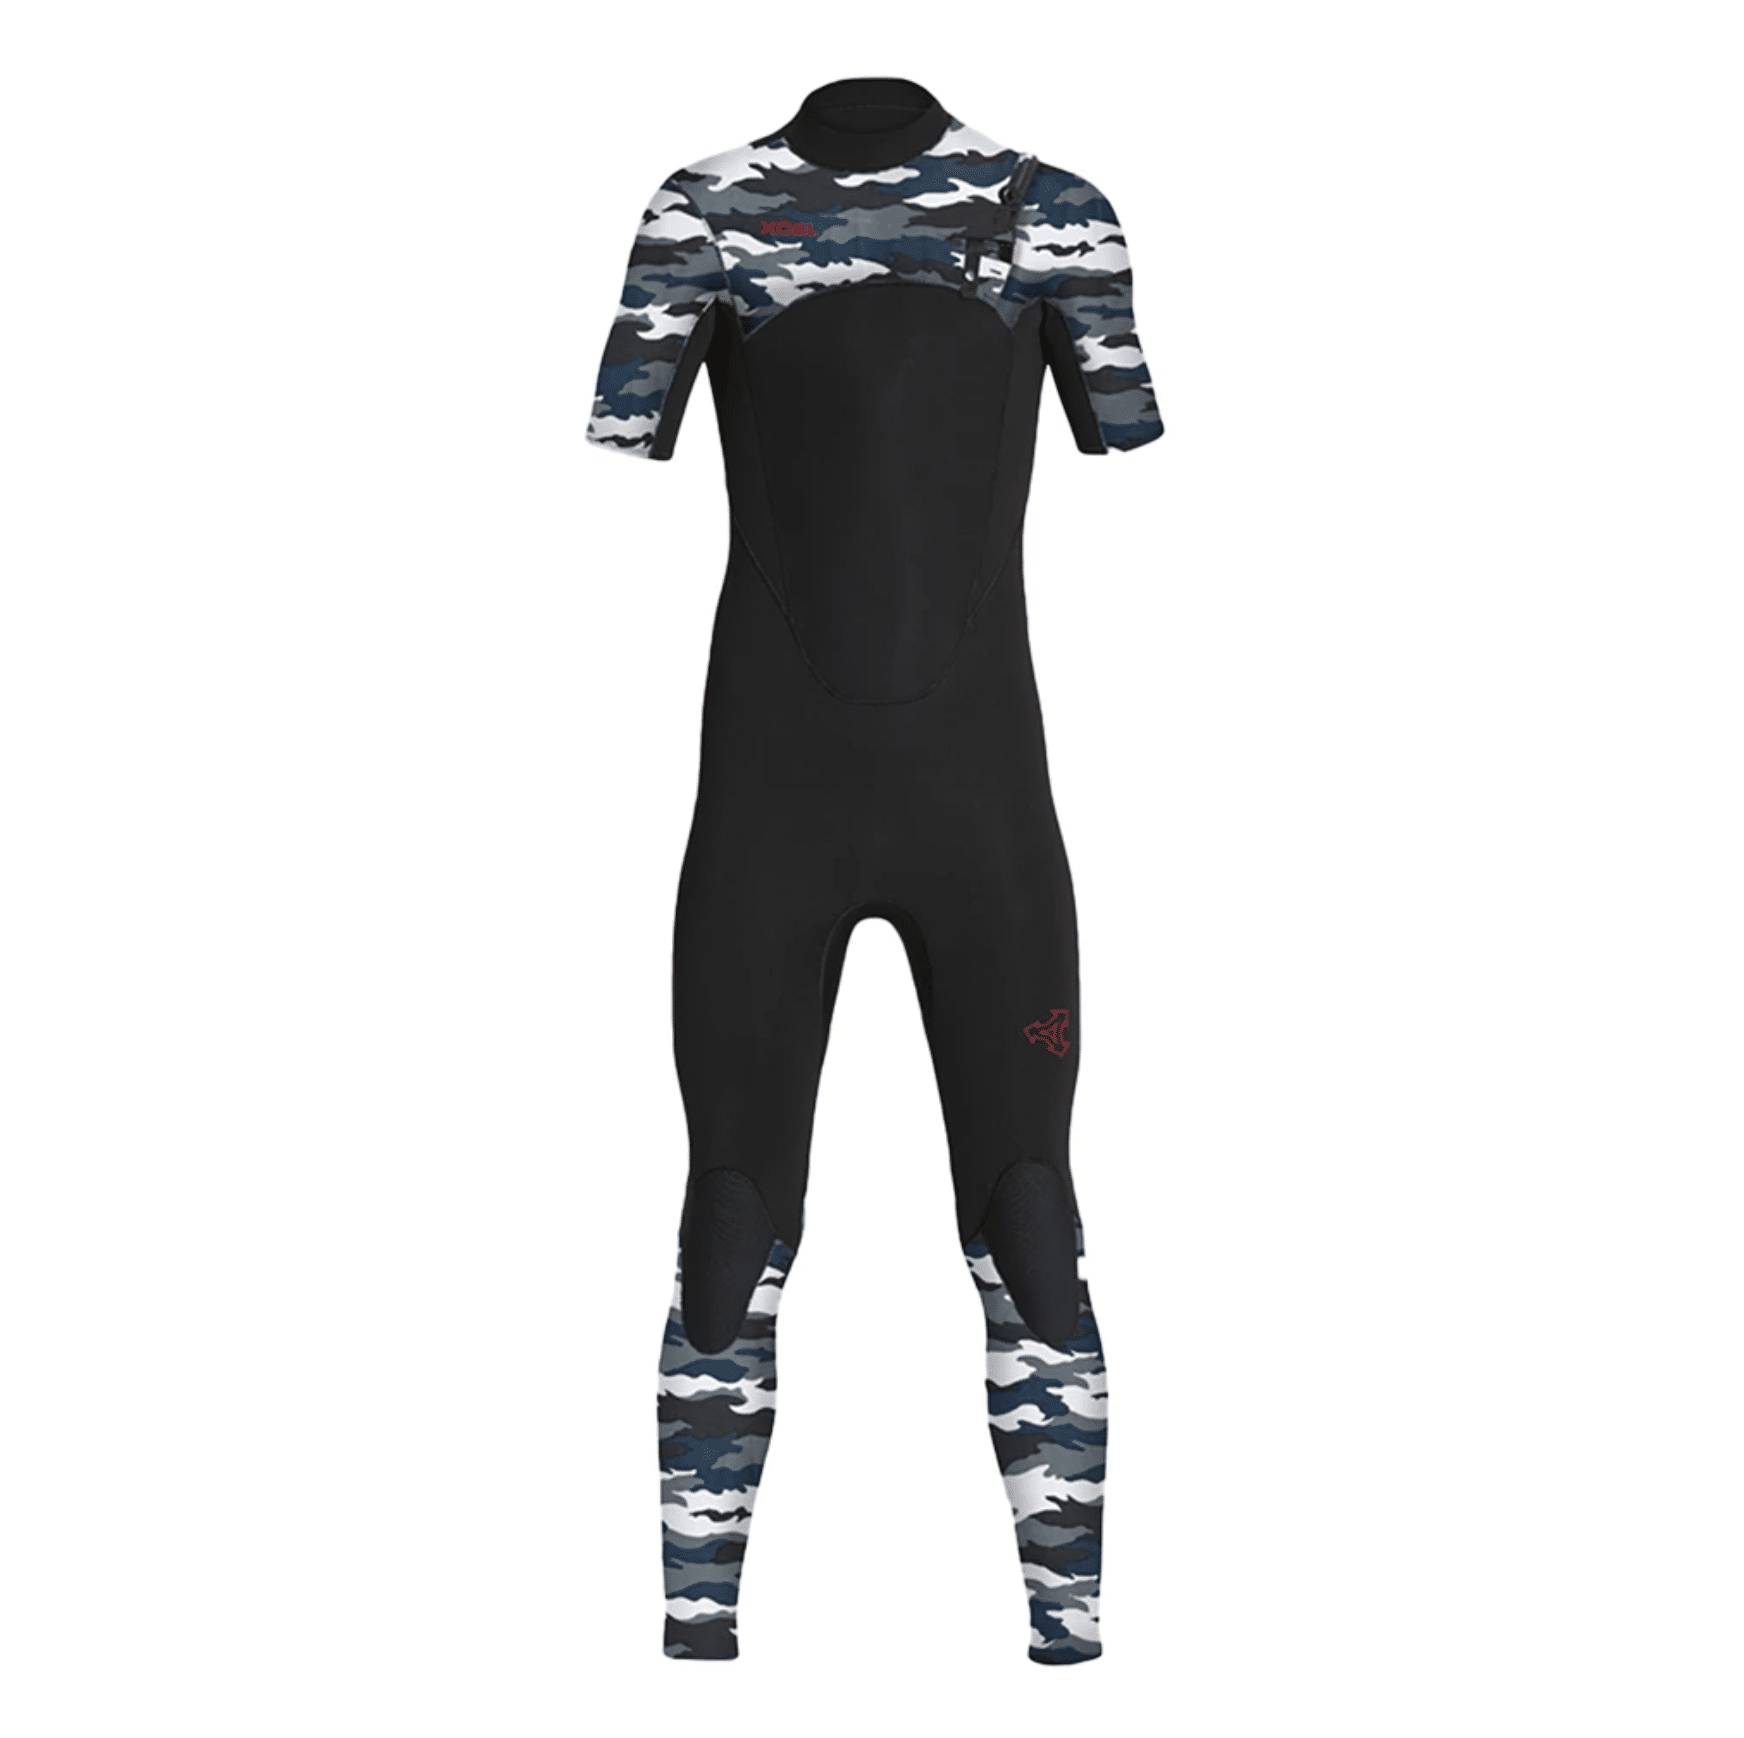 xcel youth wetsuit